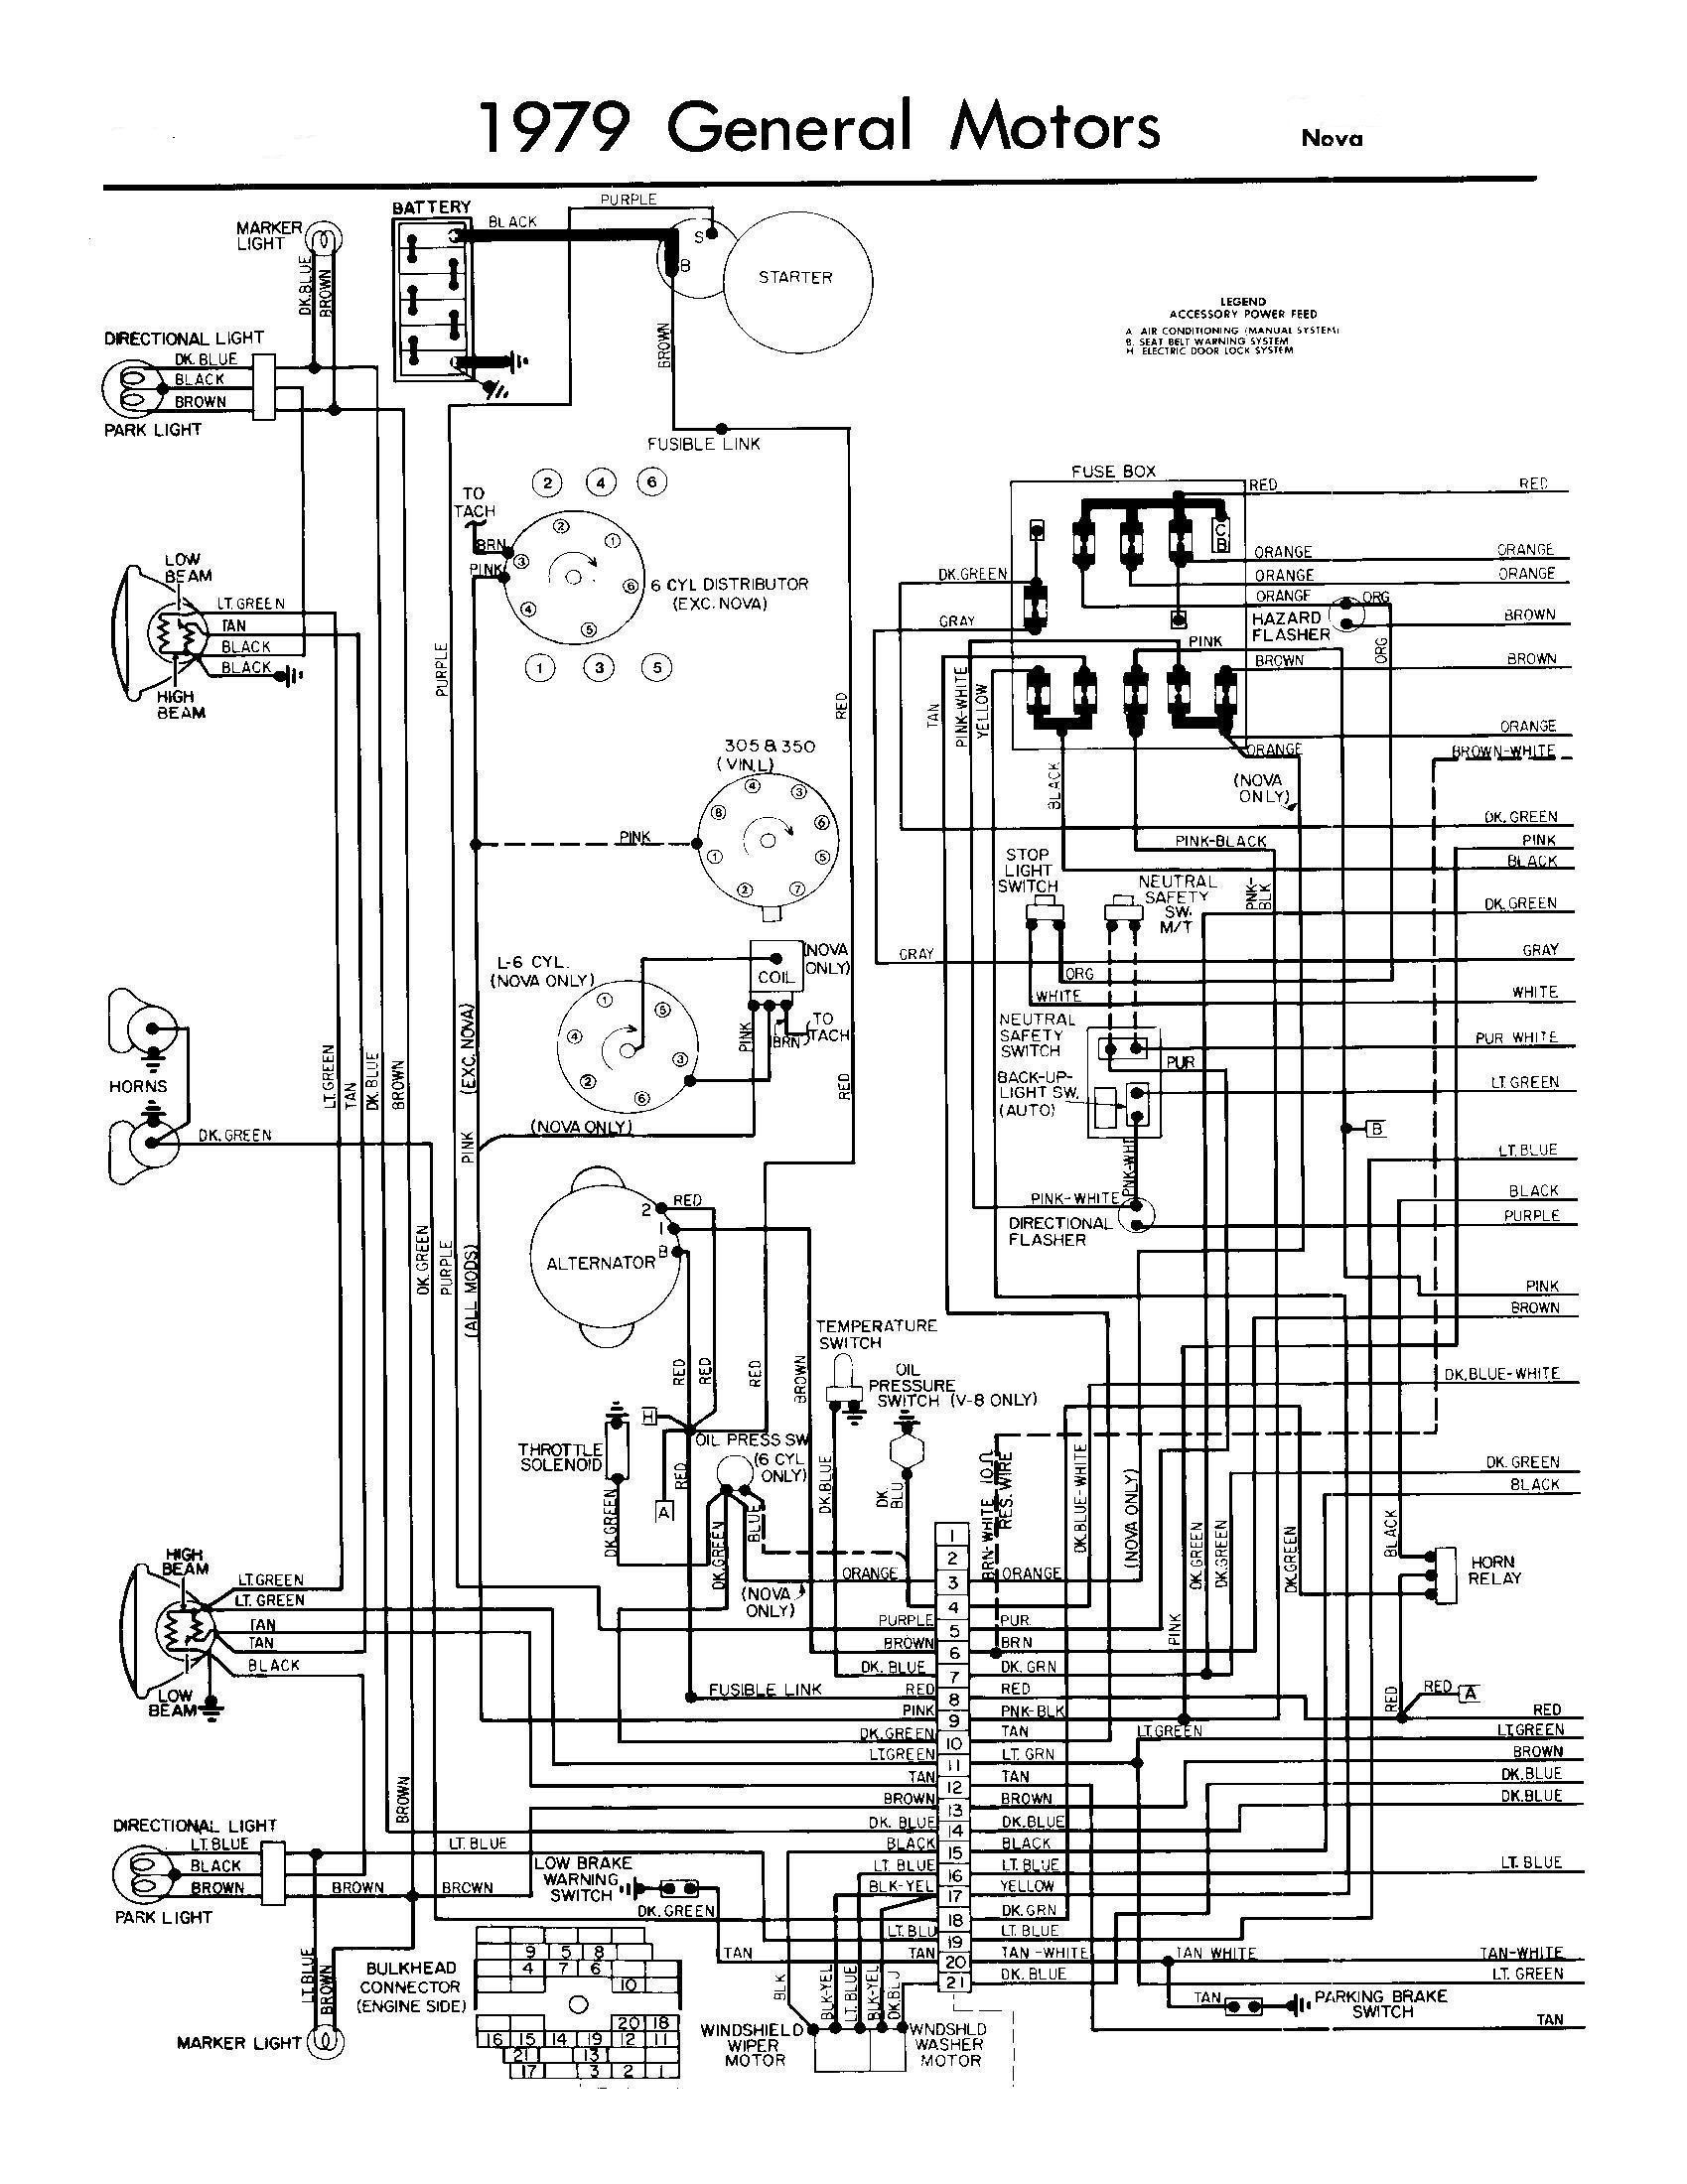 1969 Mach 1 Wiring Diagram - Wiring Diagram & Electricity Basics 101 •